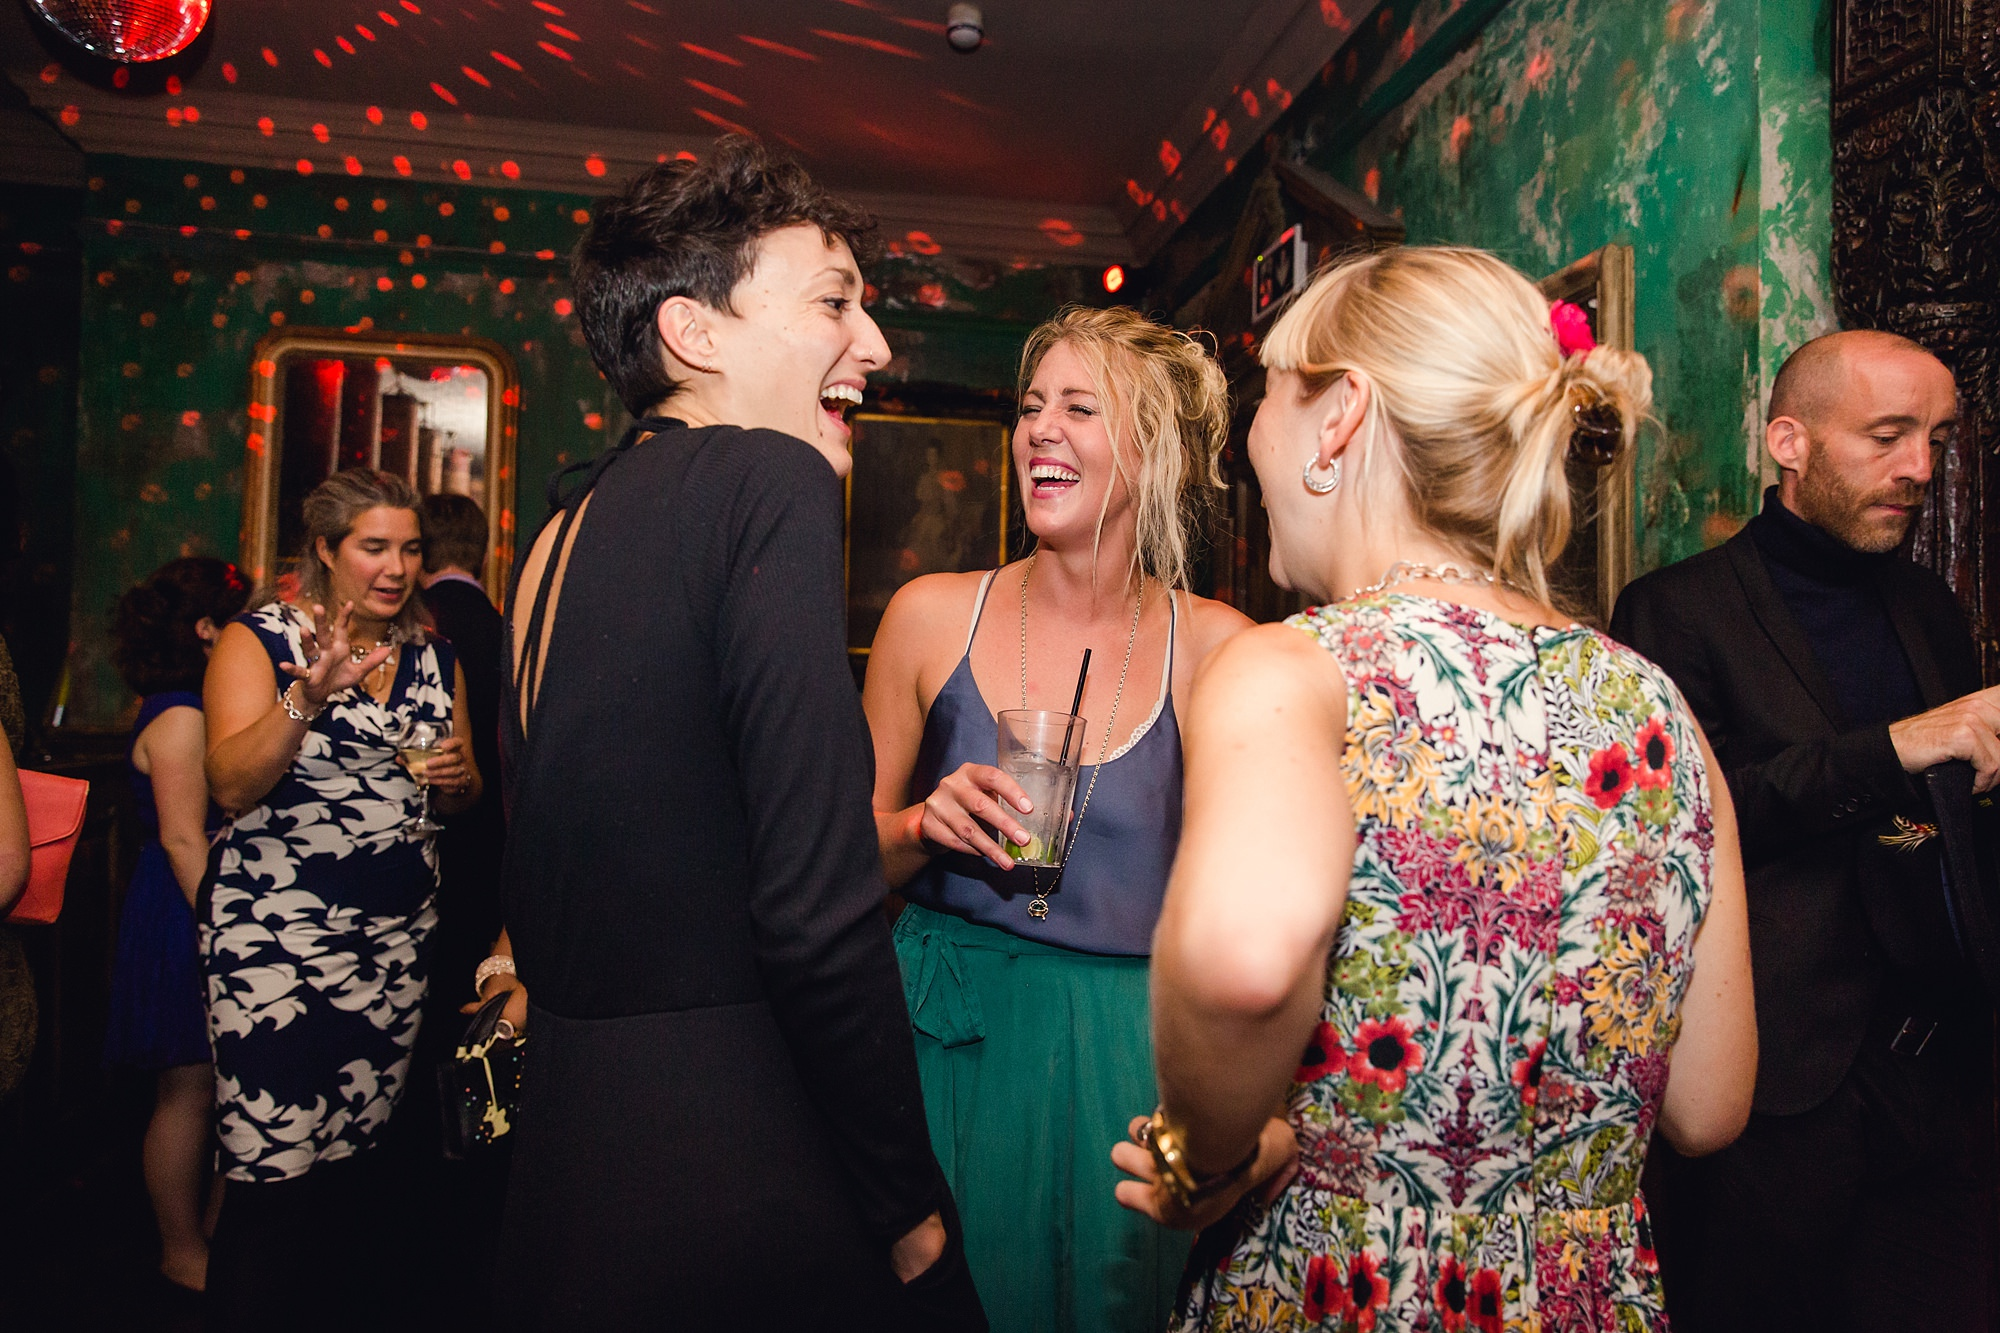 Paradise by way of Kensal Green wedding happy guests